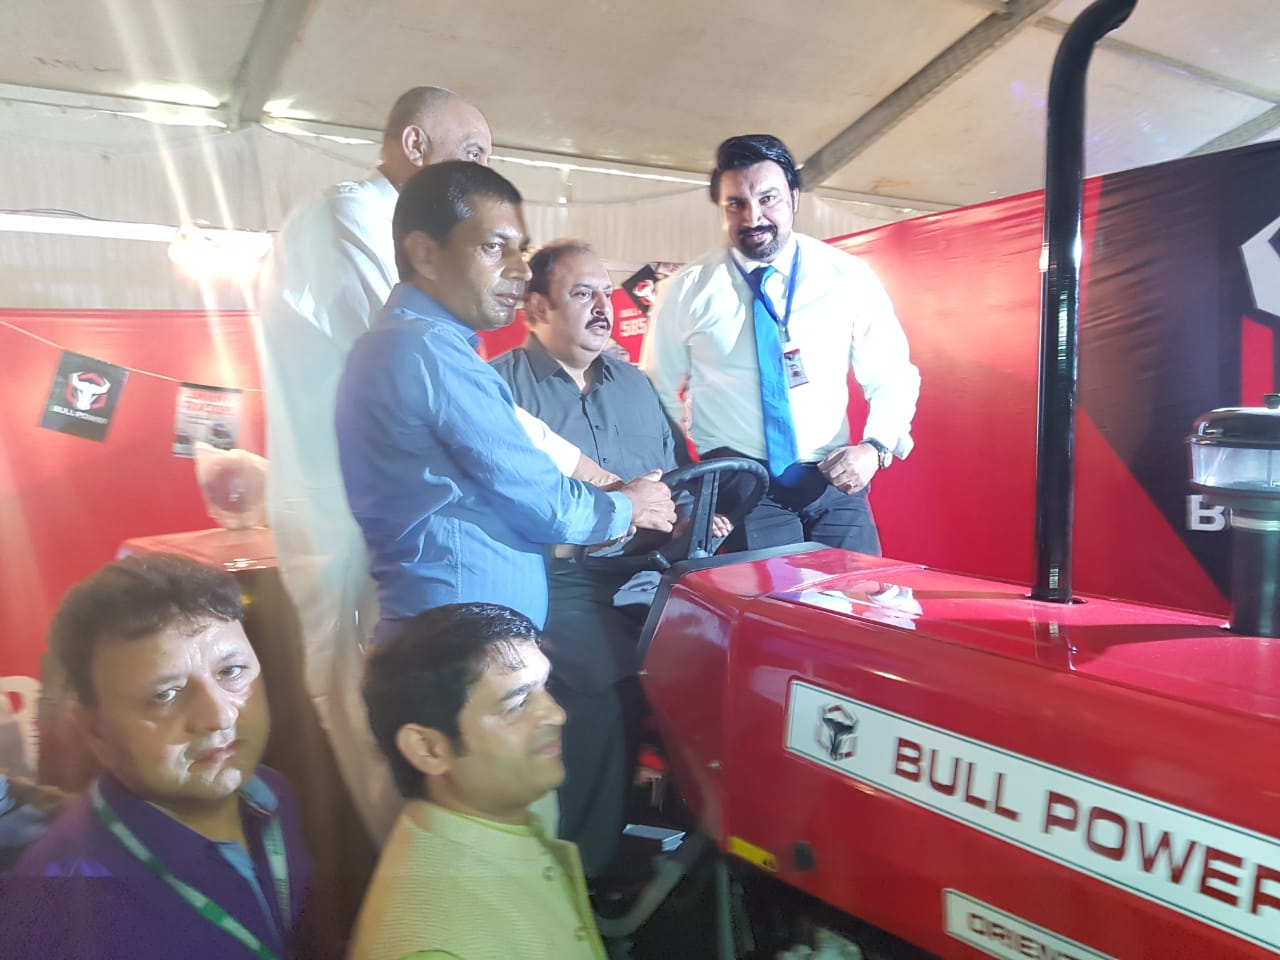 Federal Minister of Agriculture, Mr. Nauman Langrial visit at our Stall